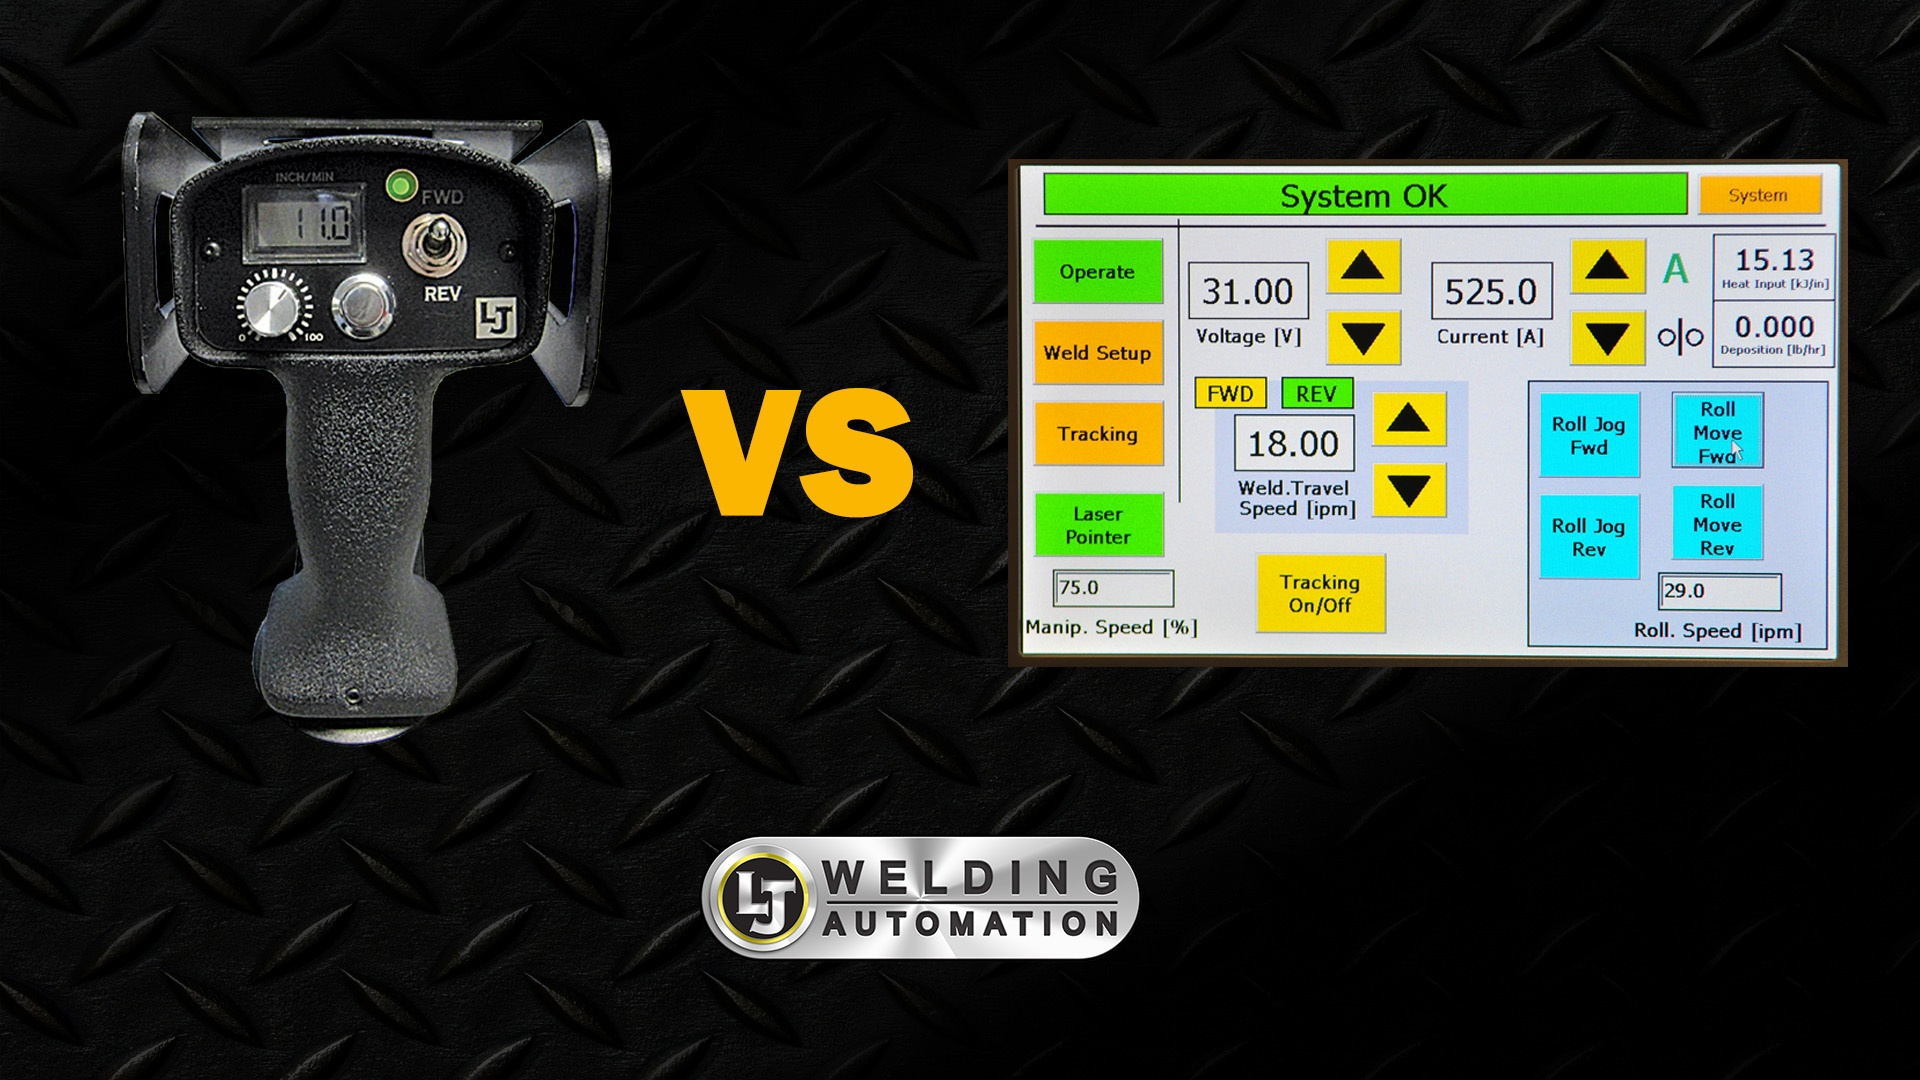 hmi versus pushbutton for your operator interface